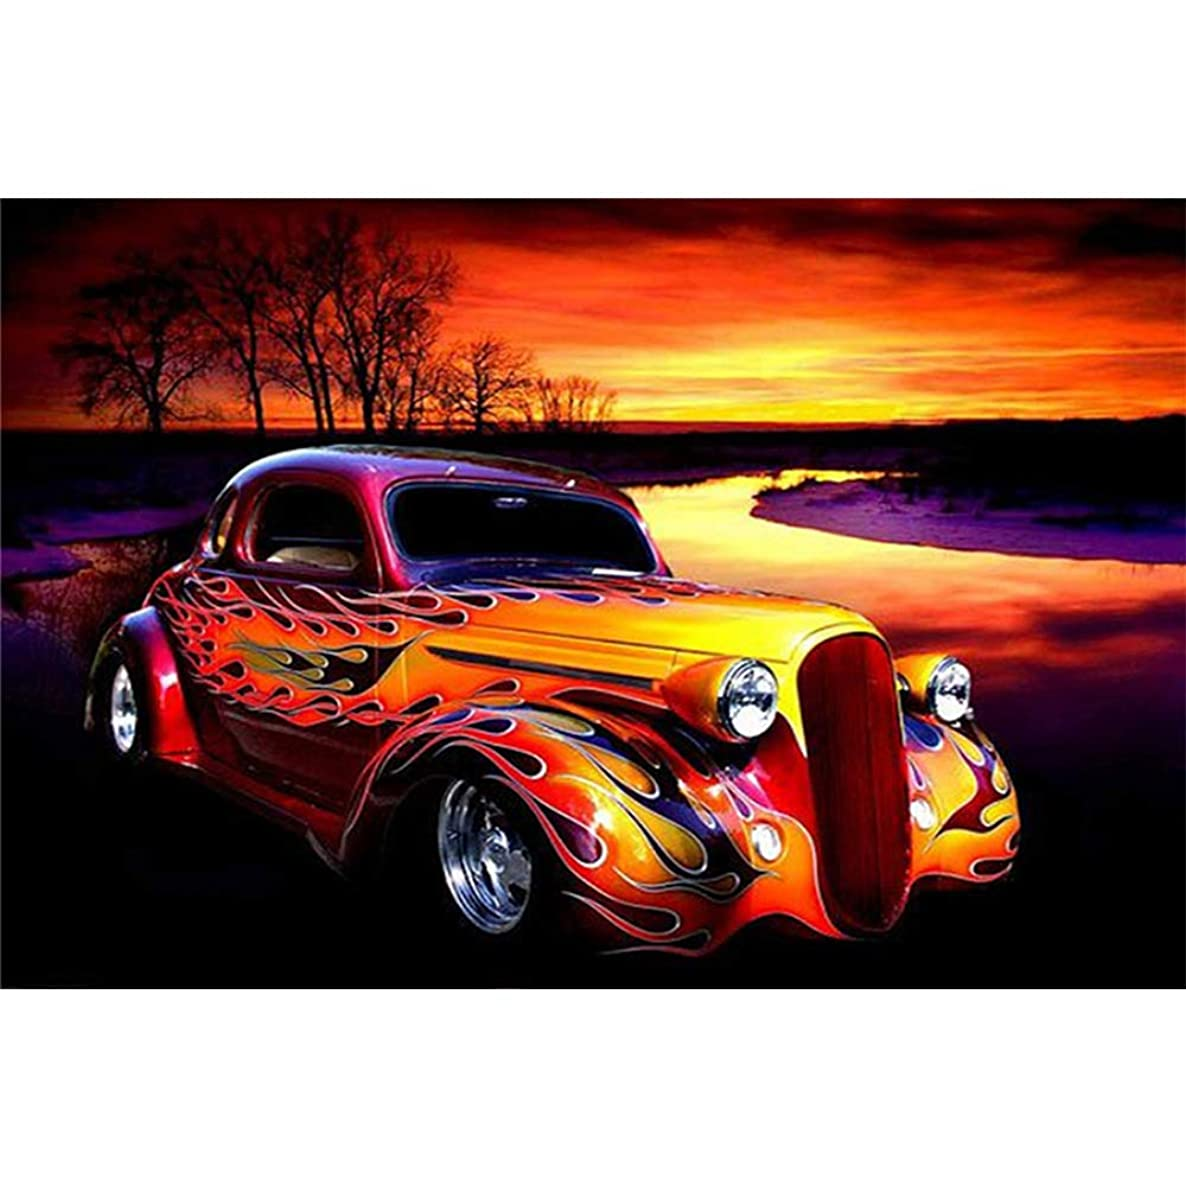 5D DIY Diamond Painting Classical Car Full Drill Cross Stitch Craft Kit Wall Stickers for Living Room Decoration Drawing Art Supplies Painting Paint Finishes